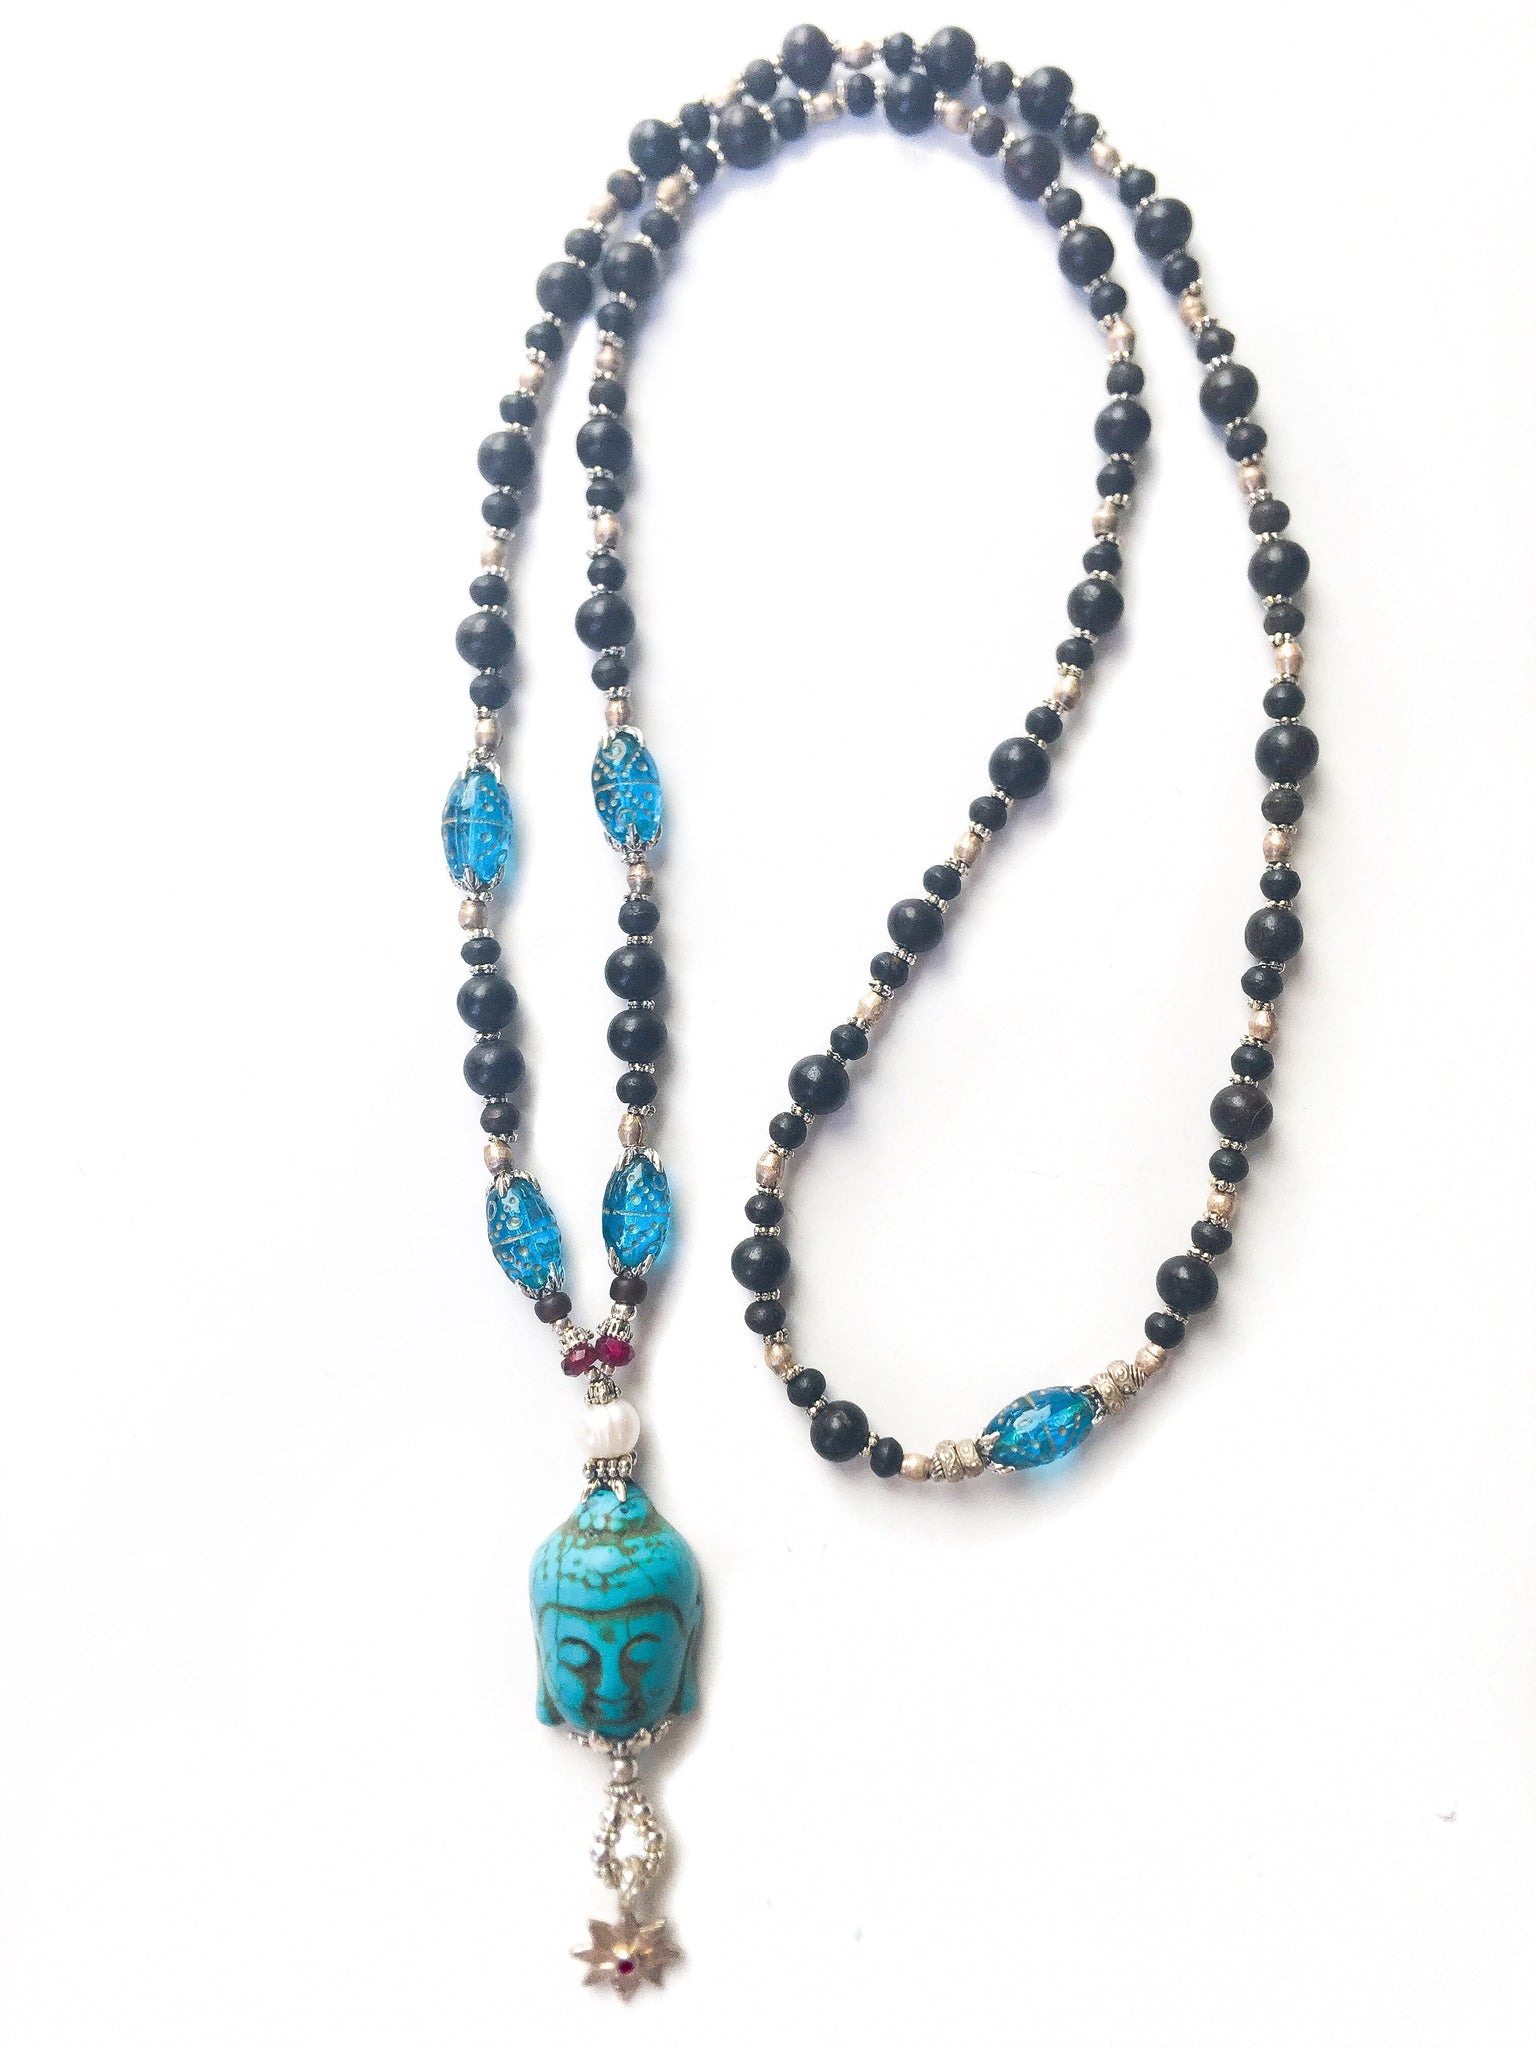 Blue Compassion Buddha Long Necklace